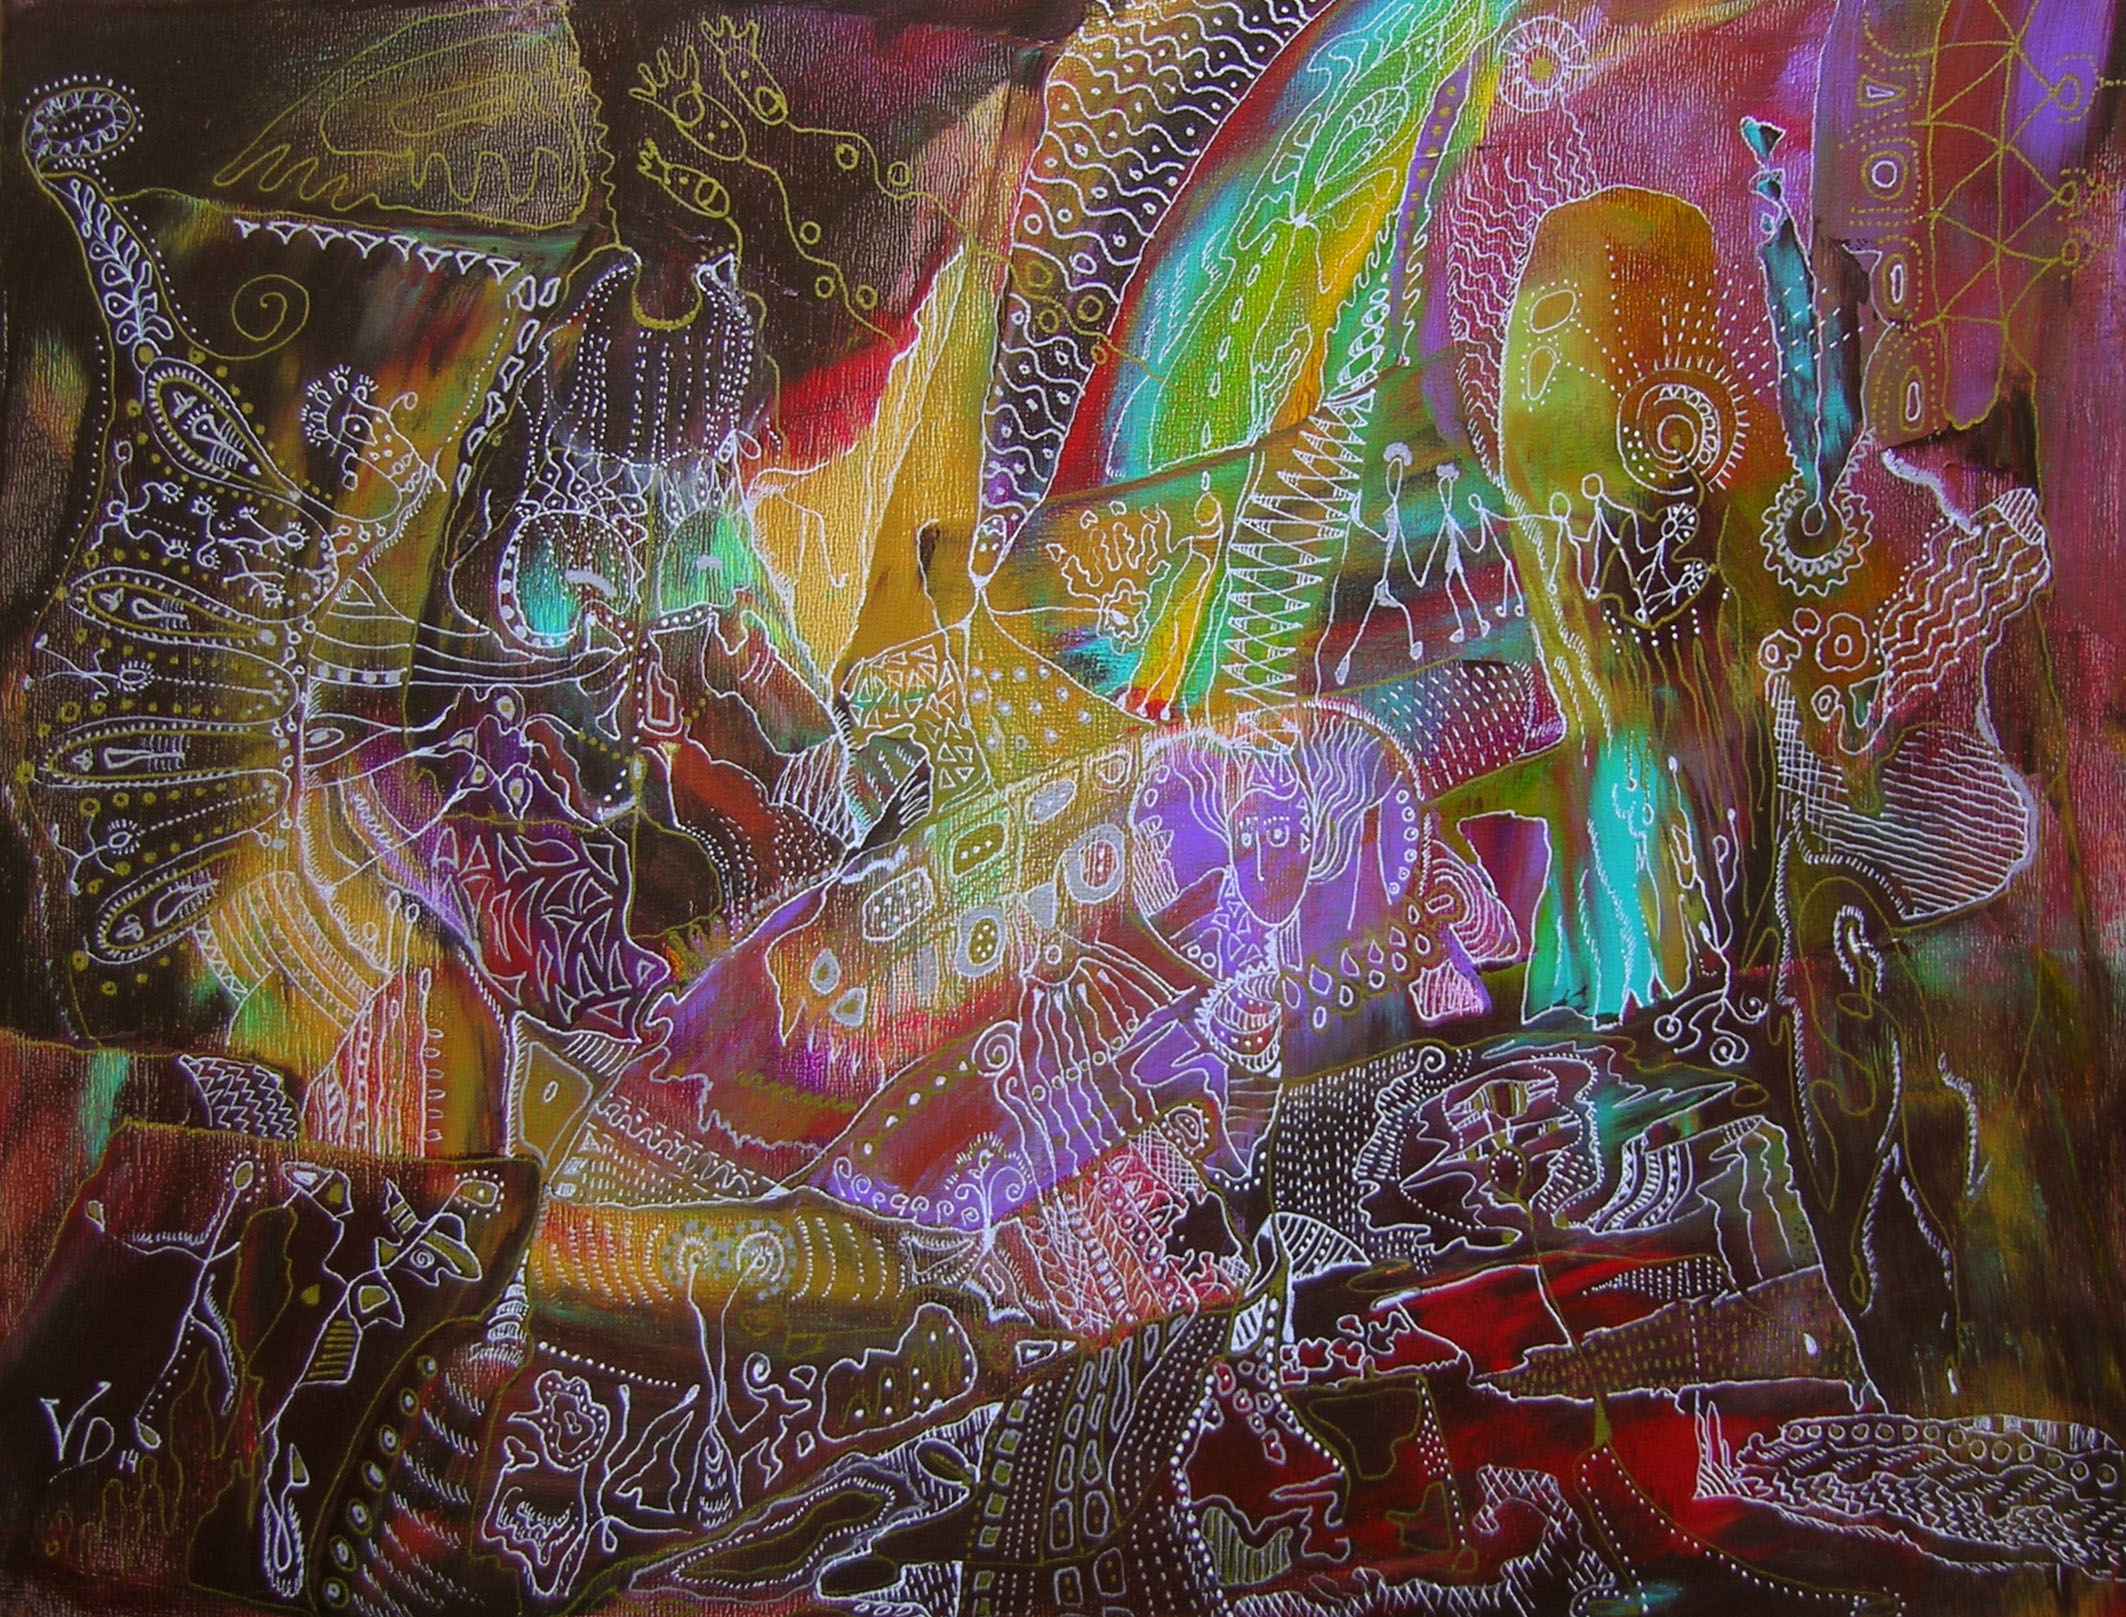 Abstraction, fantasy. Mixed media.  Acrylic painting on panel, ink markers.